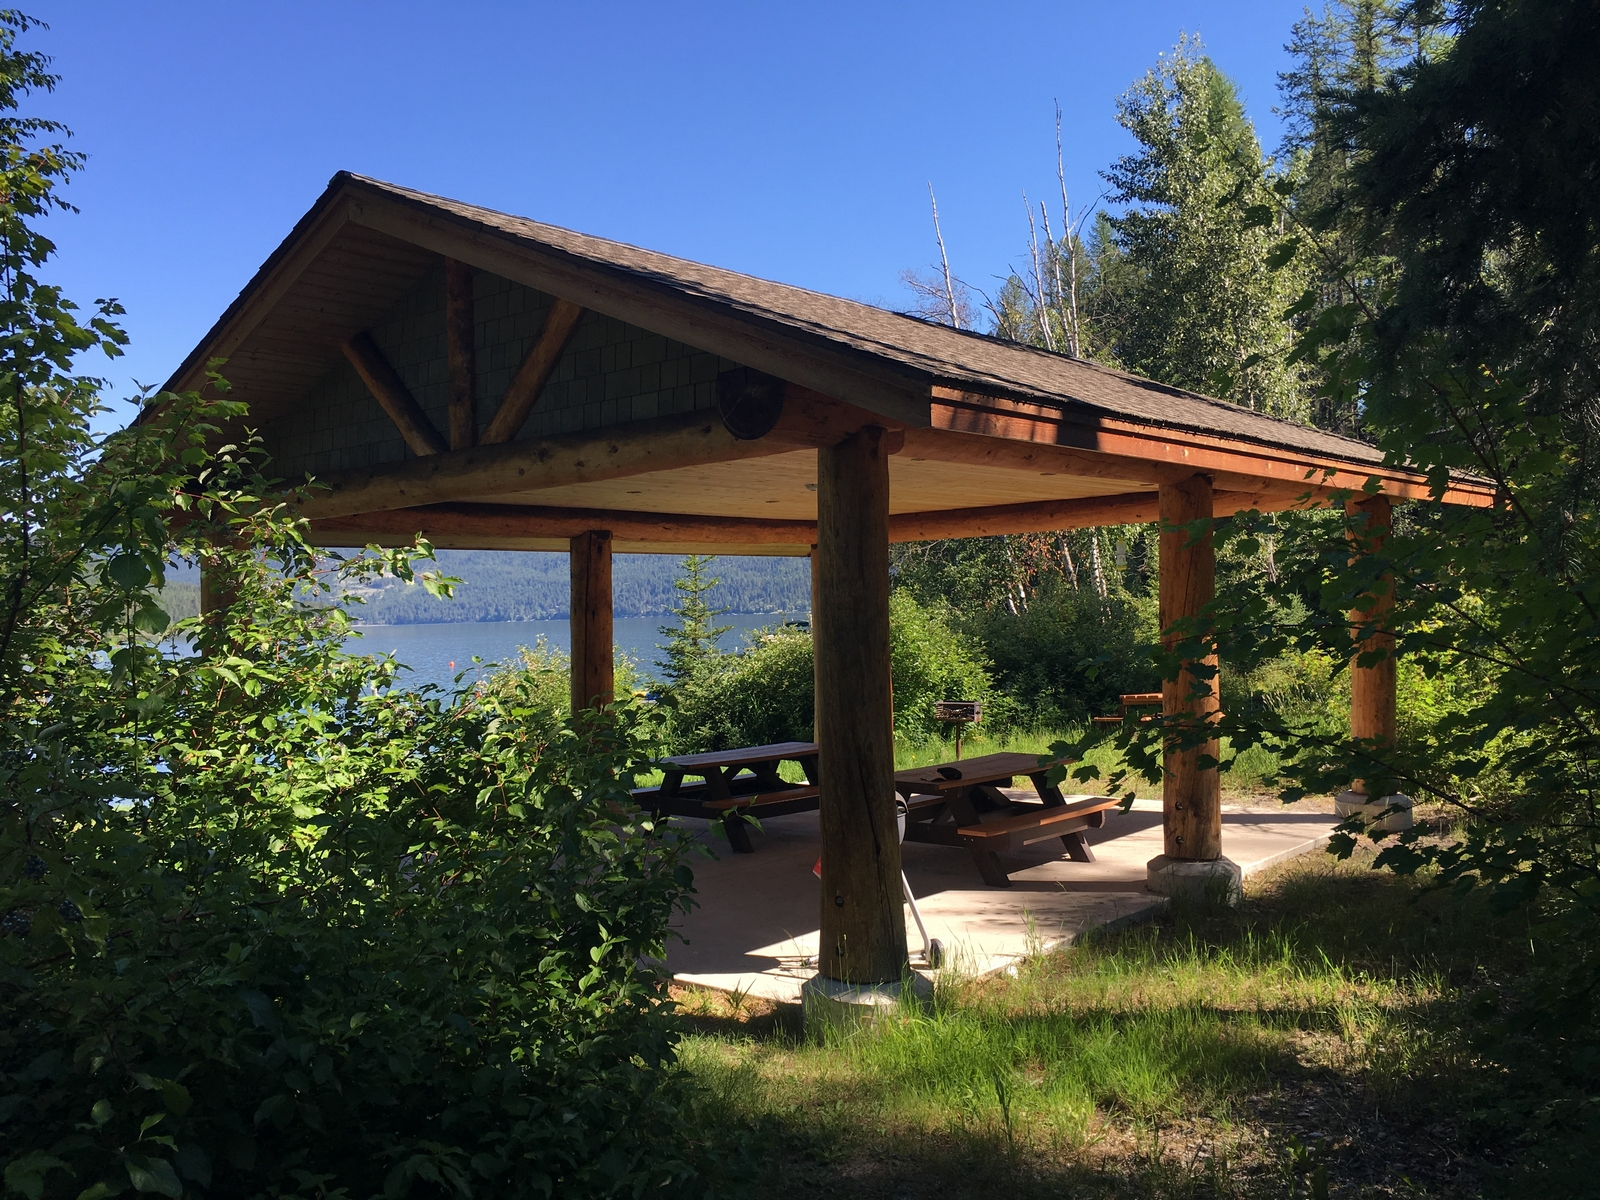 Additional photo for property listing at 1310 Lion Mountain Dr , Whitefish, MT 59937 1310  Lion Mountain Dr Whitefish, Montana 59937 United States